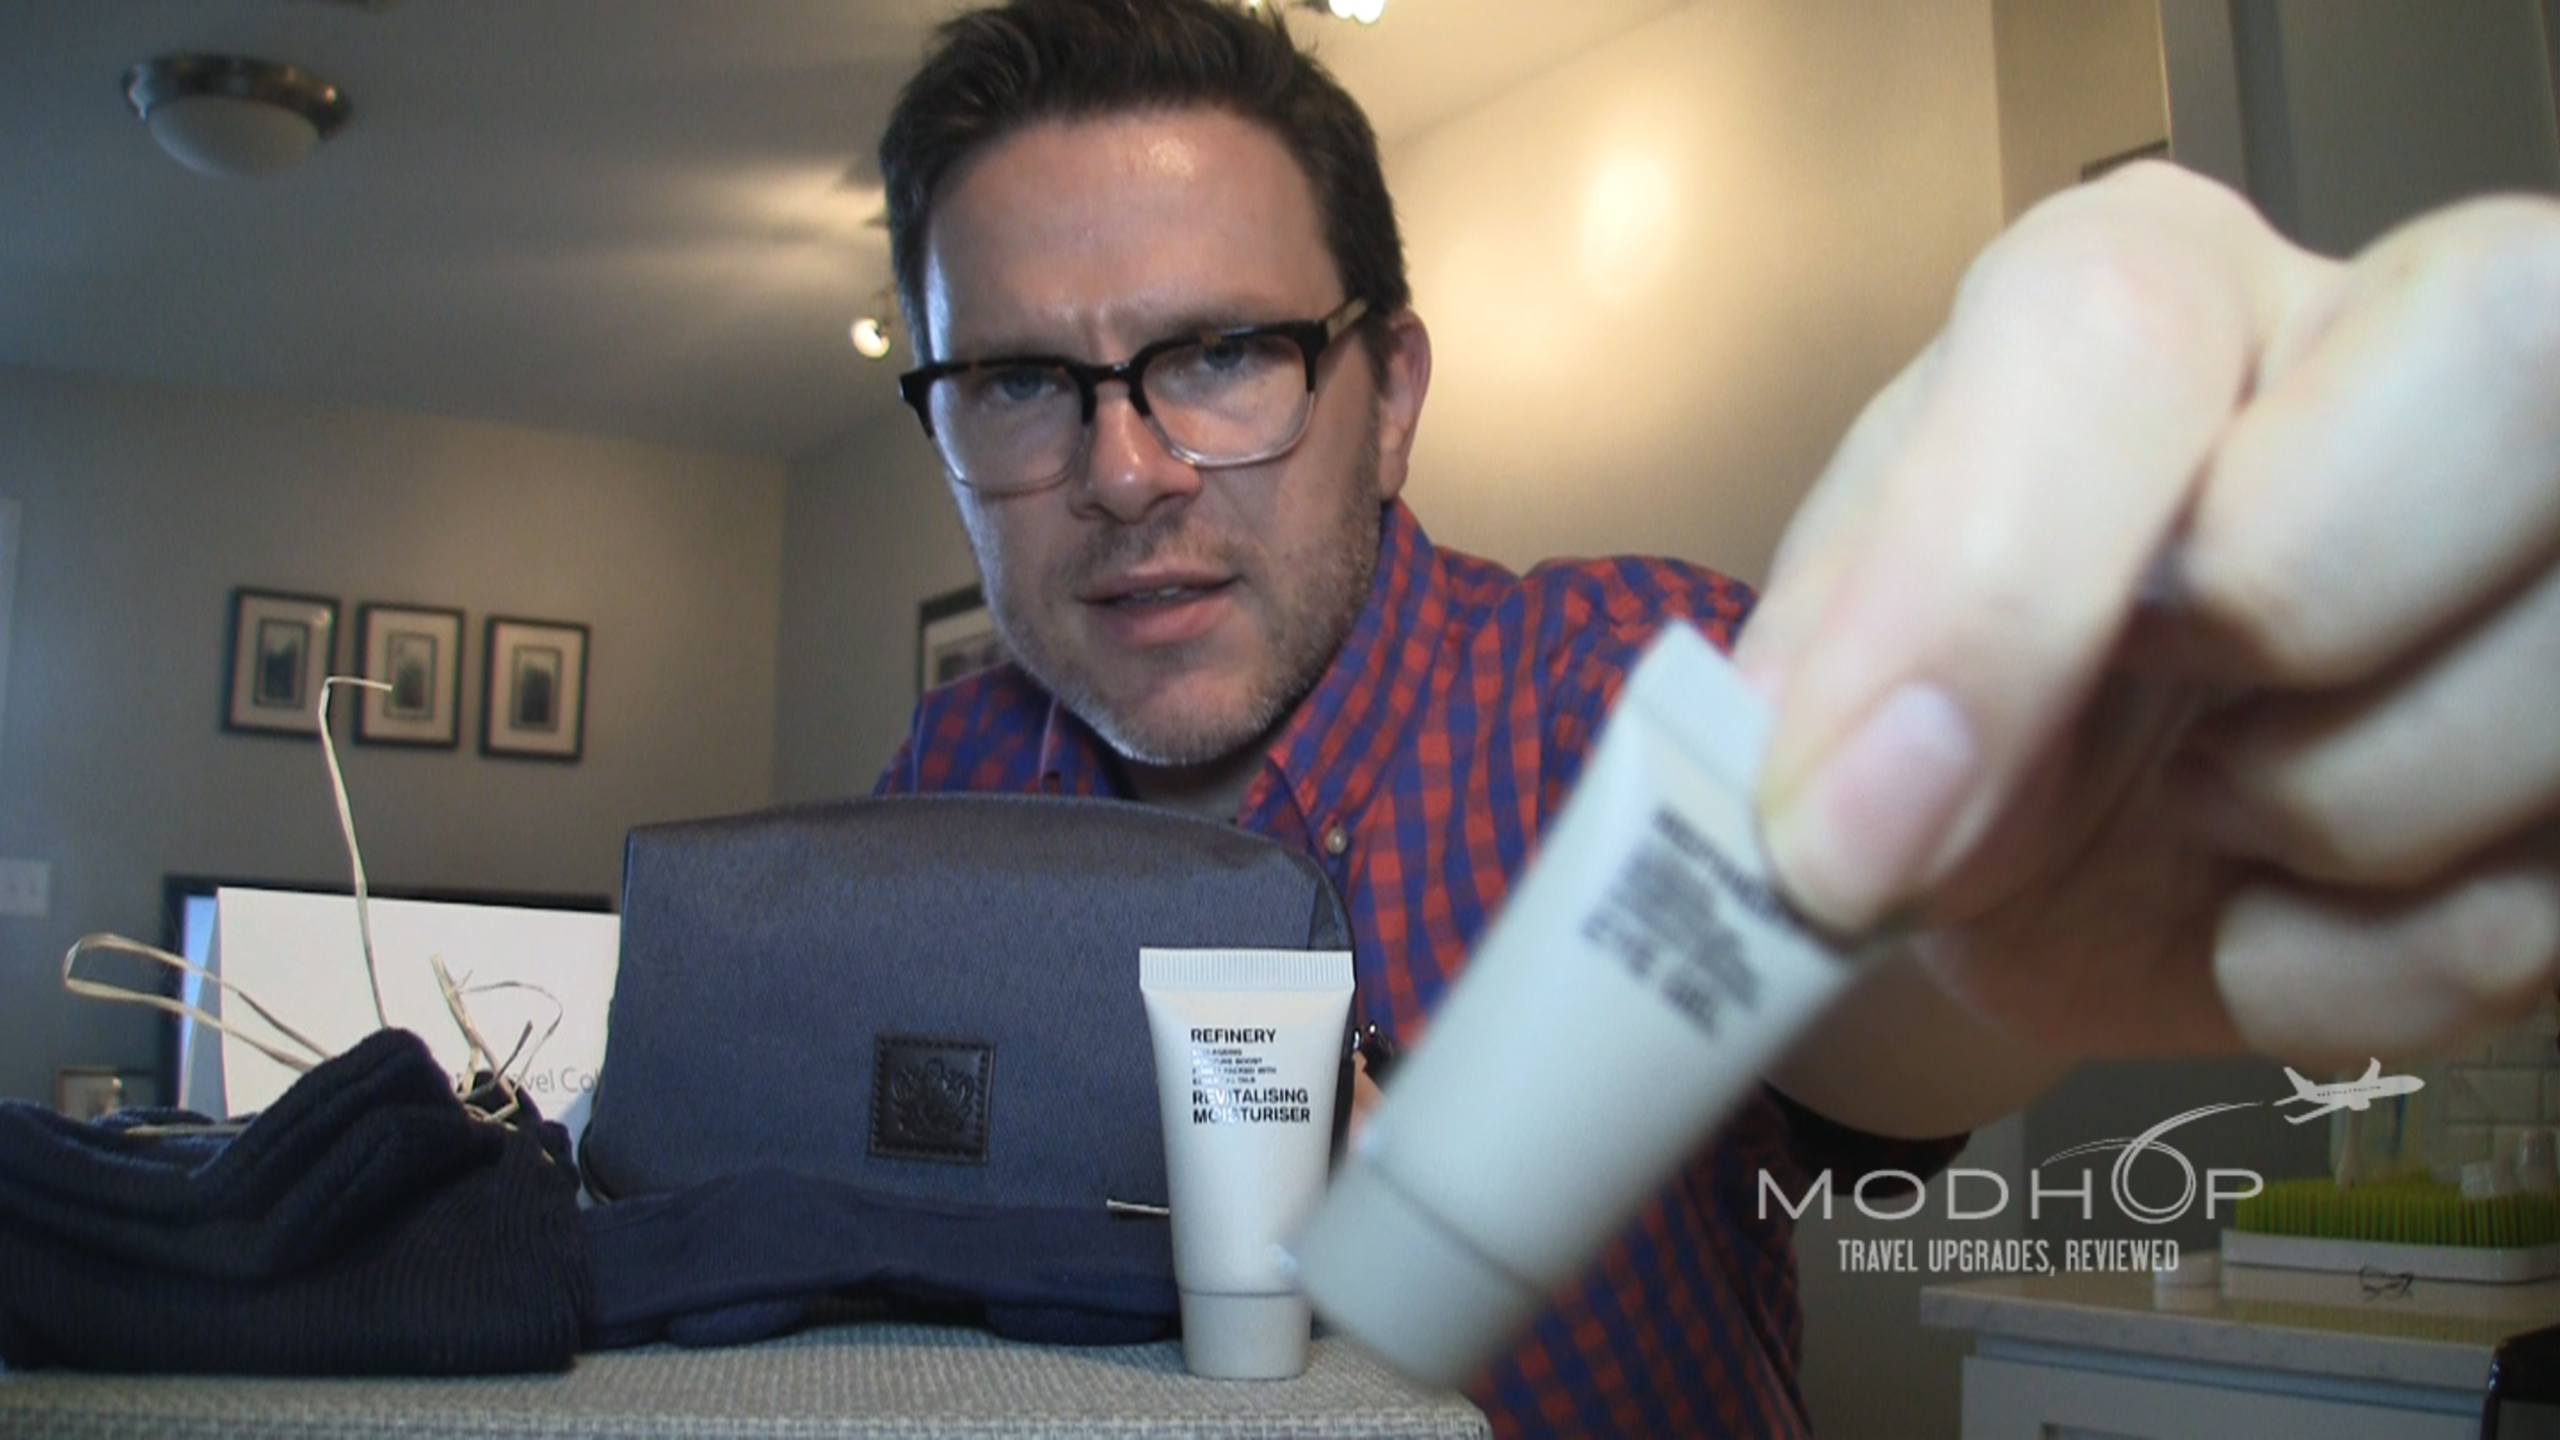 BA Amenity Kit presented blurrily by Jake Redman